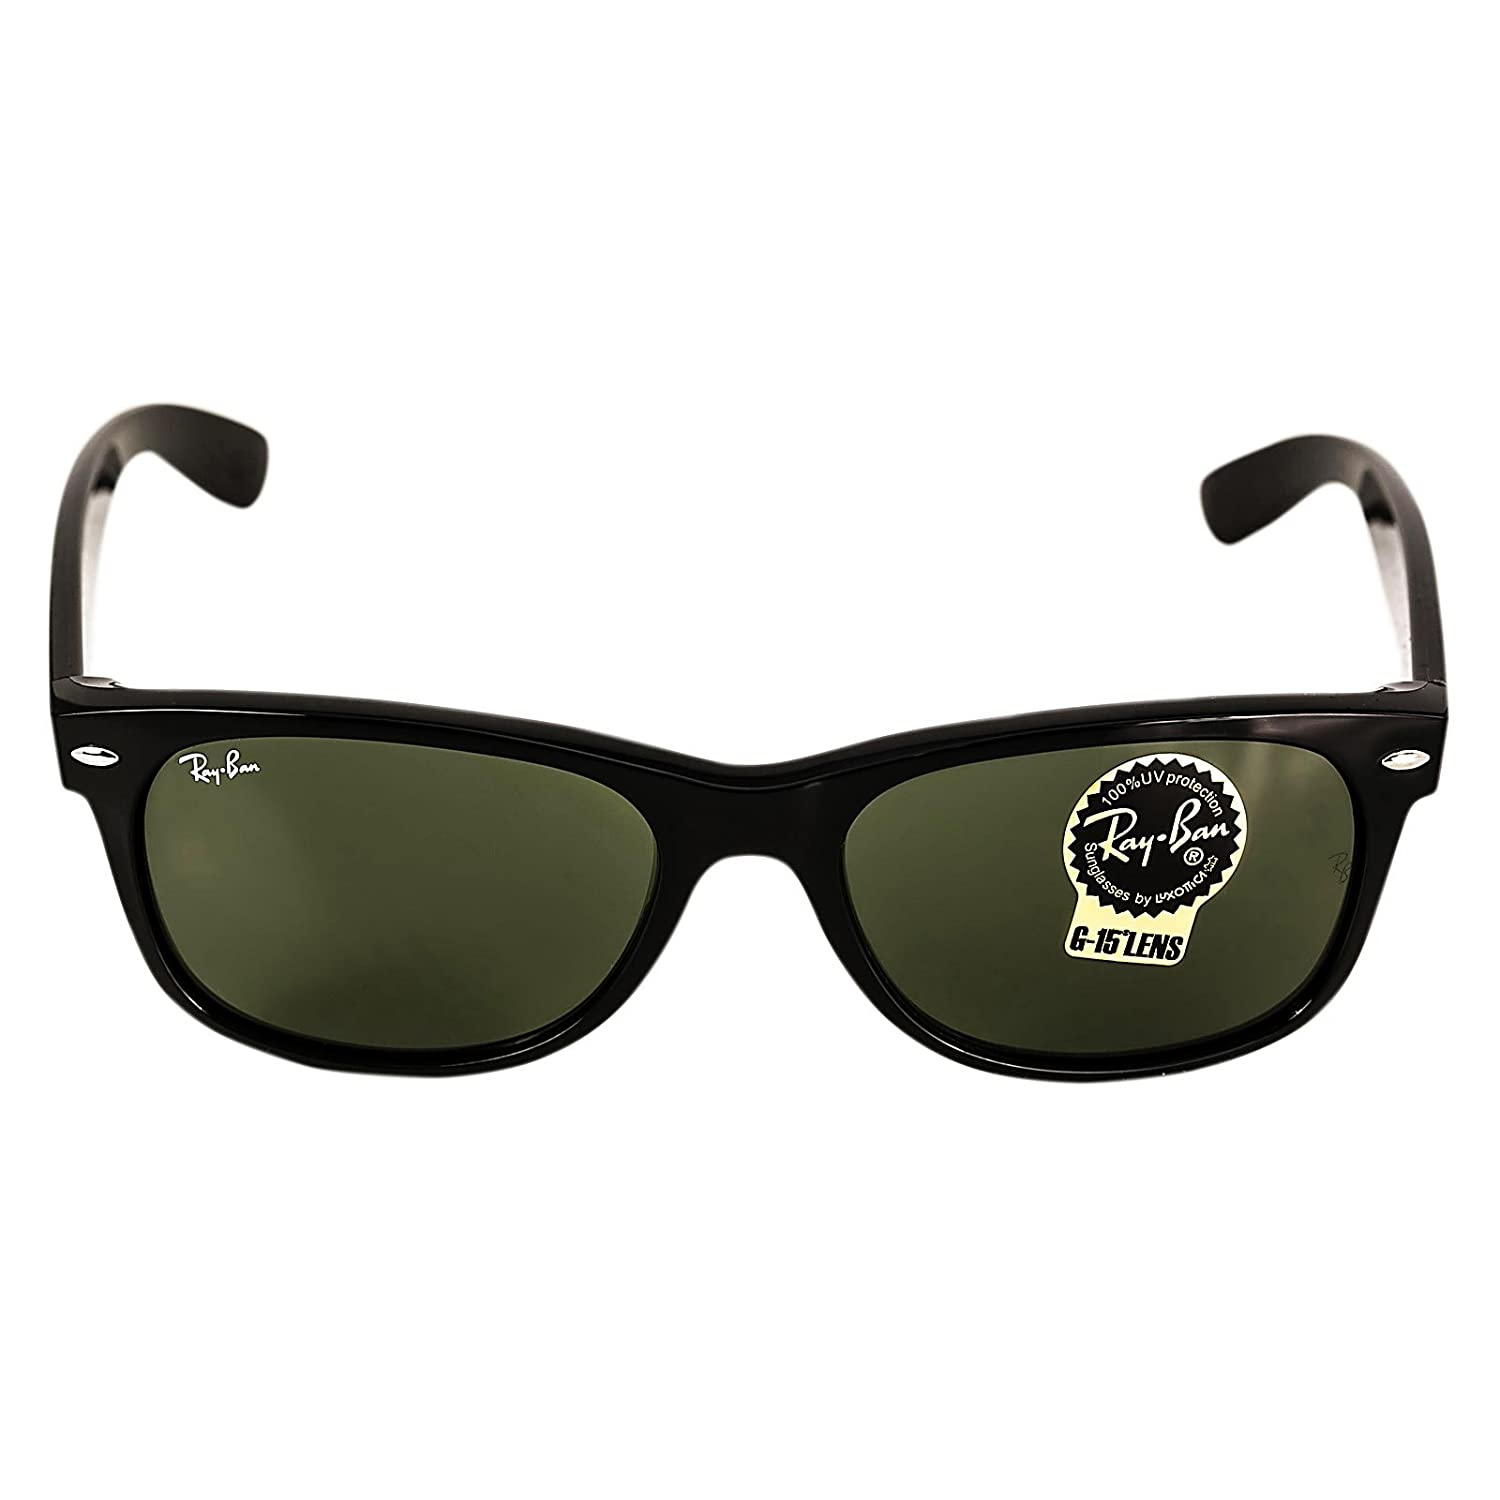 ray ban unisex rb2132 black wayfarer sunglasses  amazon: ray ban wayfarer rb2132 901l black/g 15 xlt 55mm sunglasses: shoes